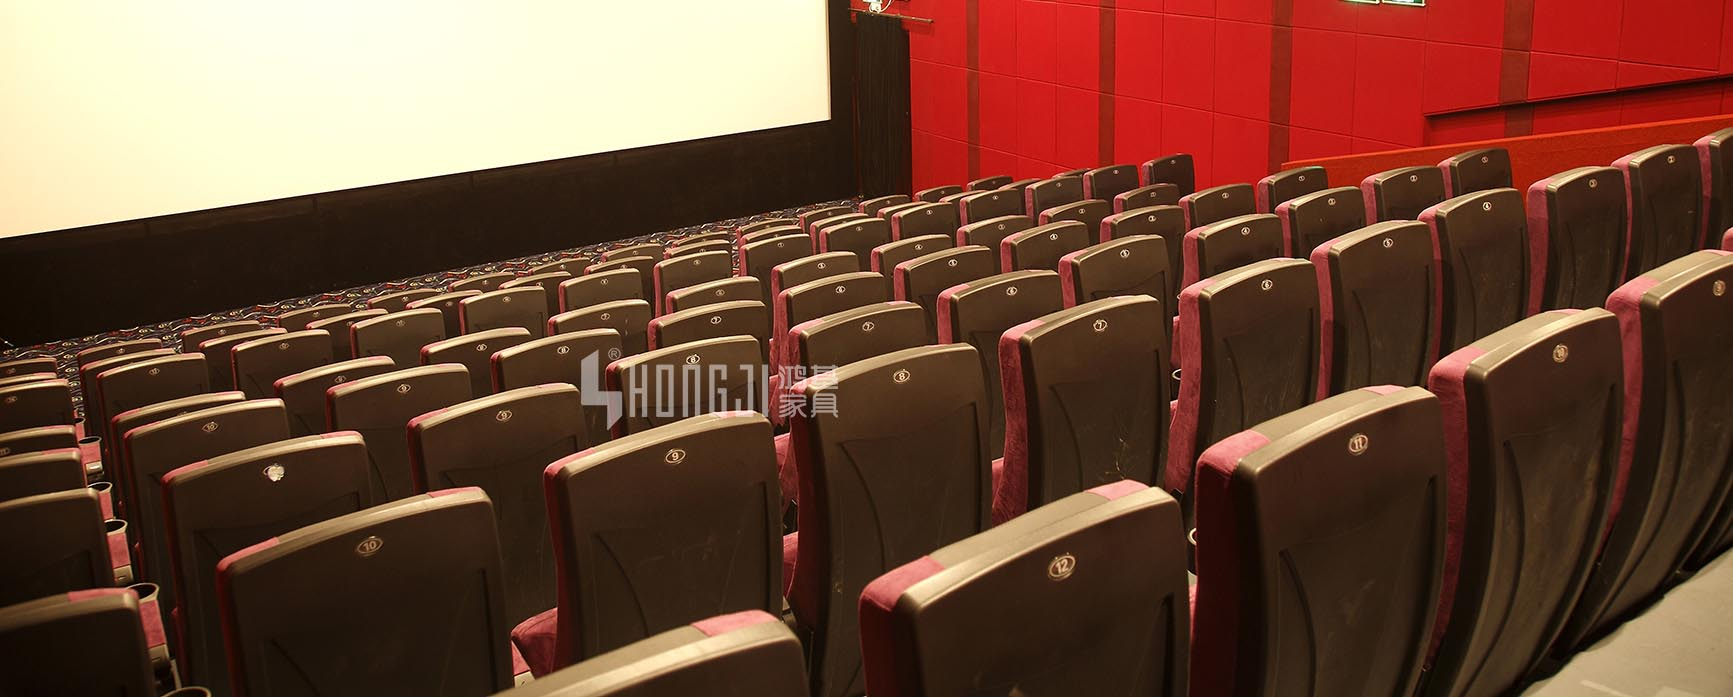 HONGJI hj16f movie theater chairs competitive price for theater-12